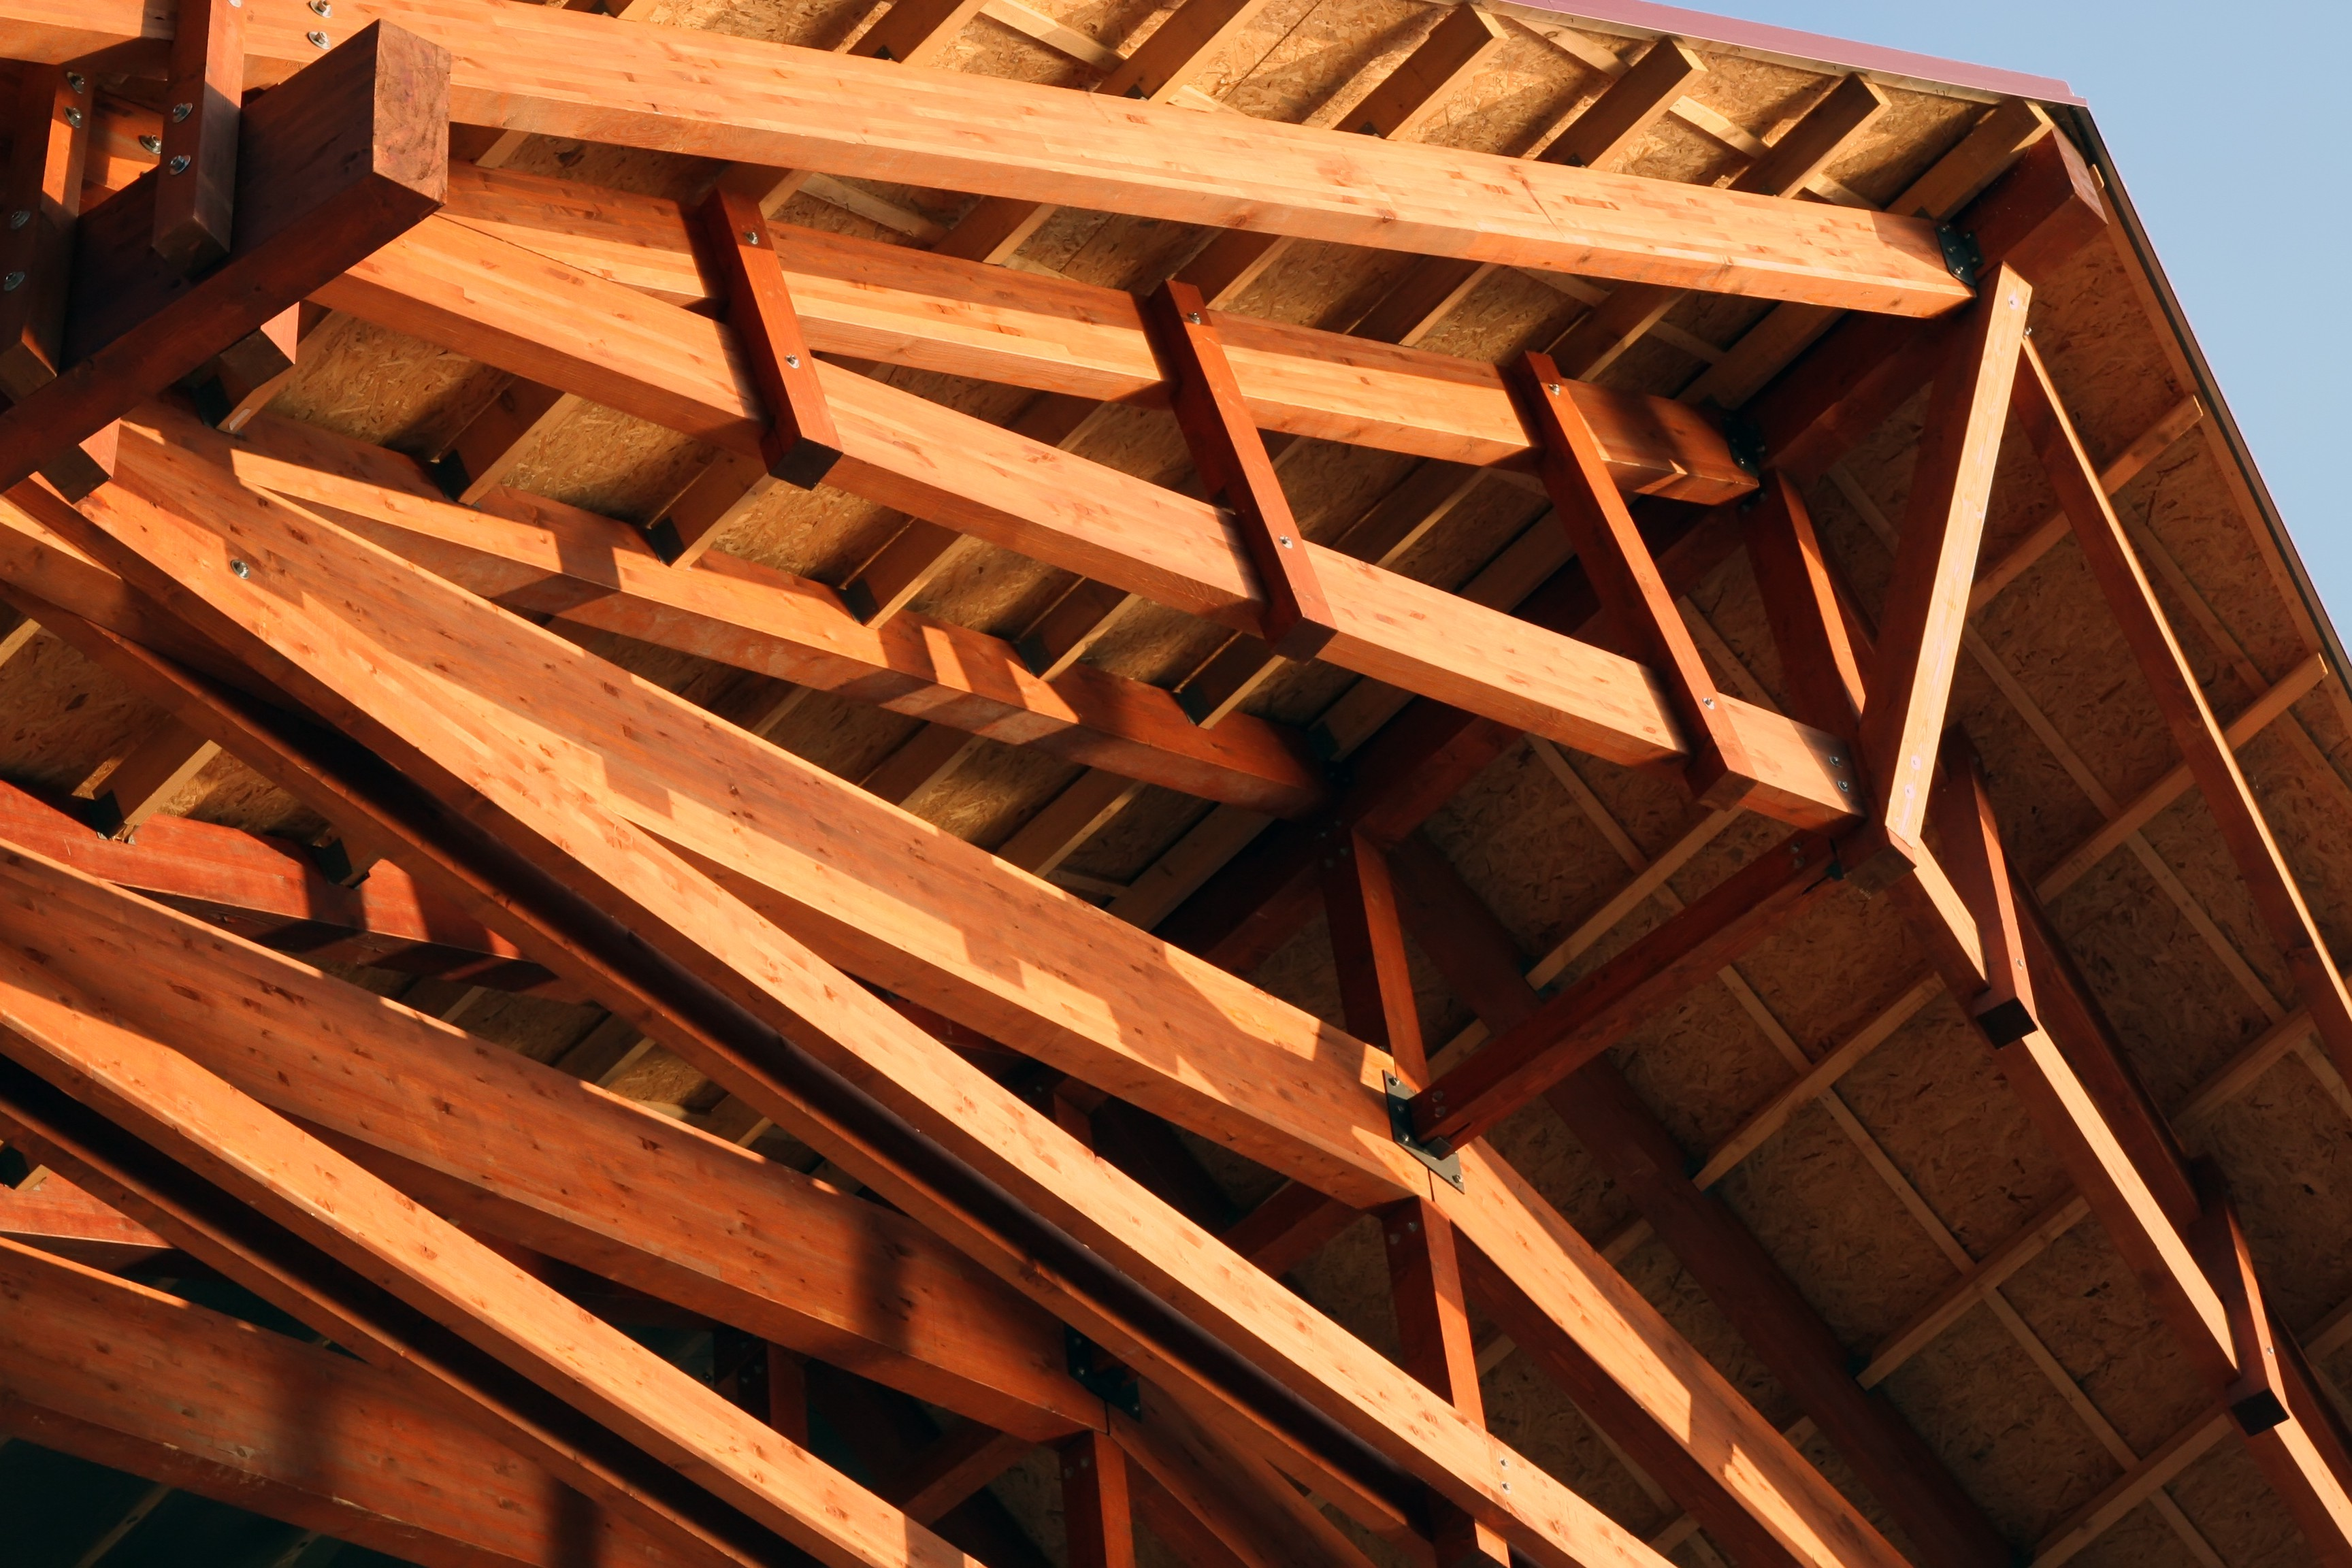 10 Roof Truss Apps To Improve Your Design And Plans By Companycam The Companycast The Official Companycam Blog